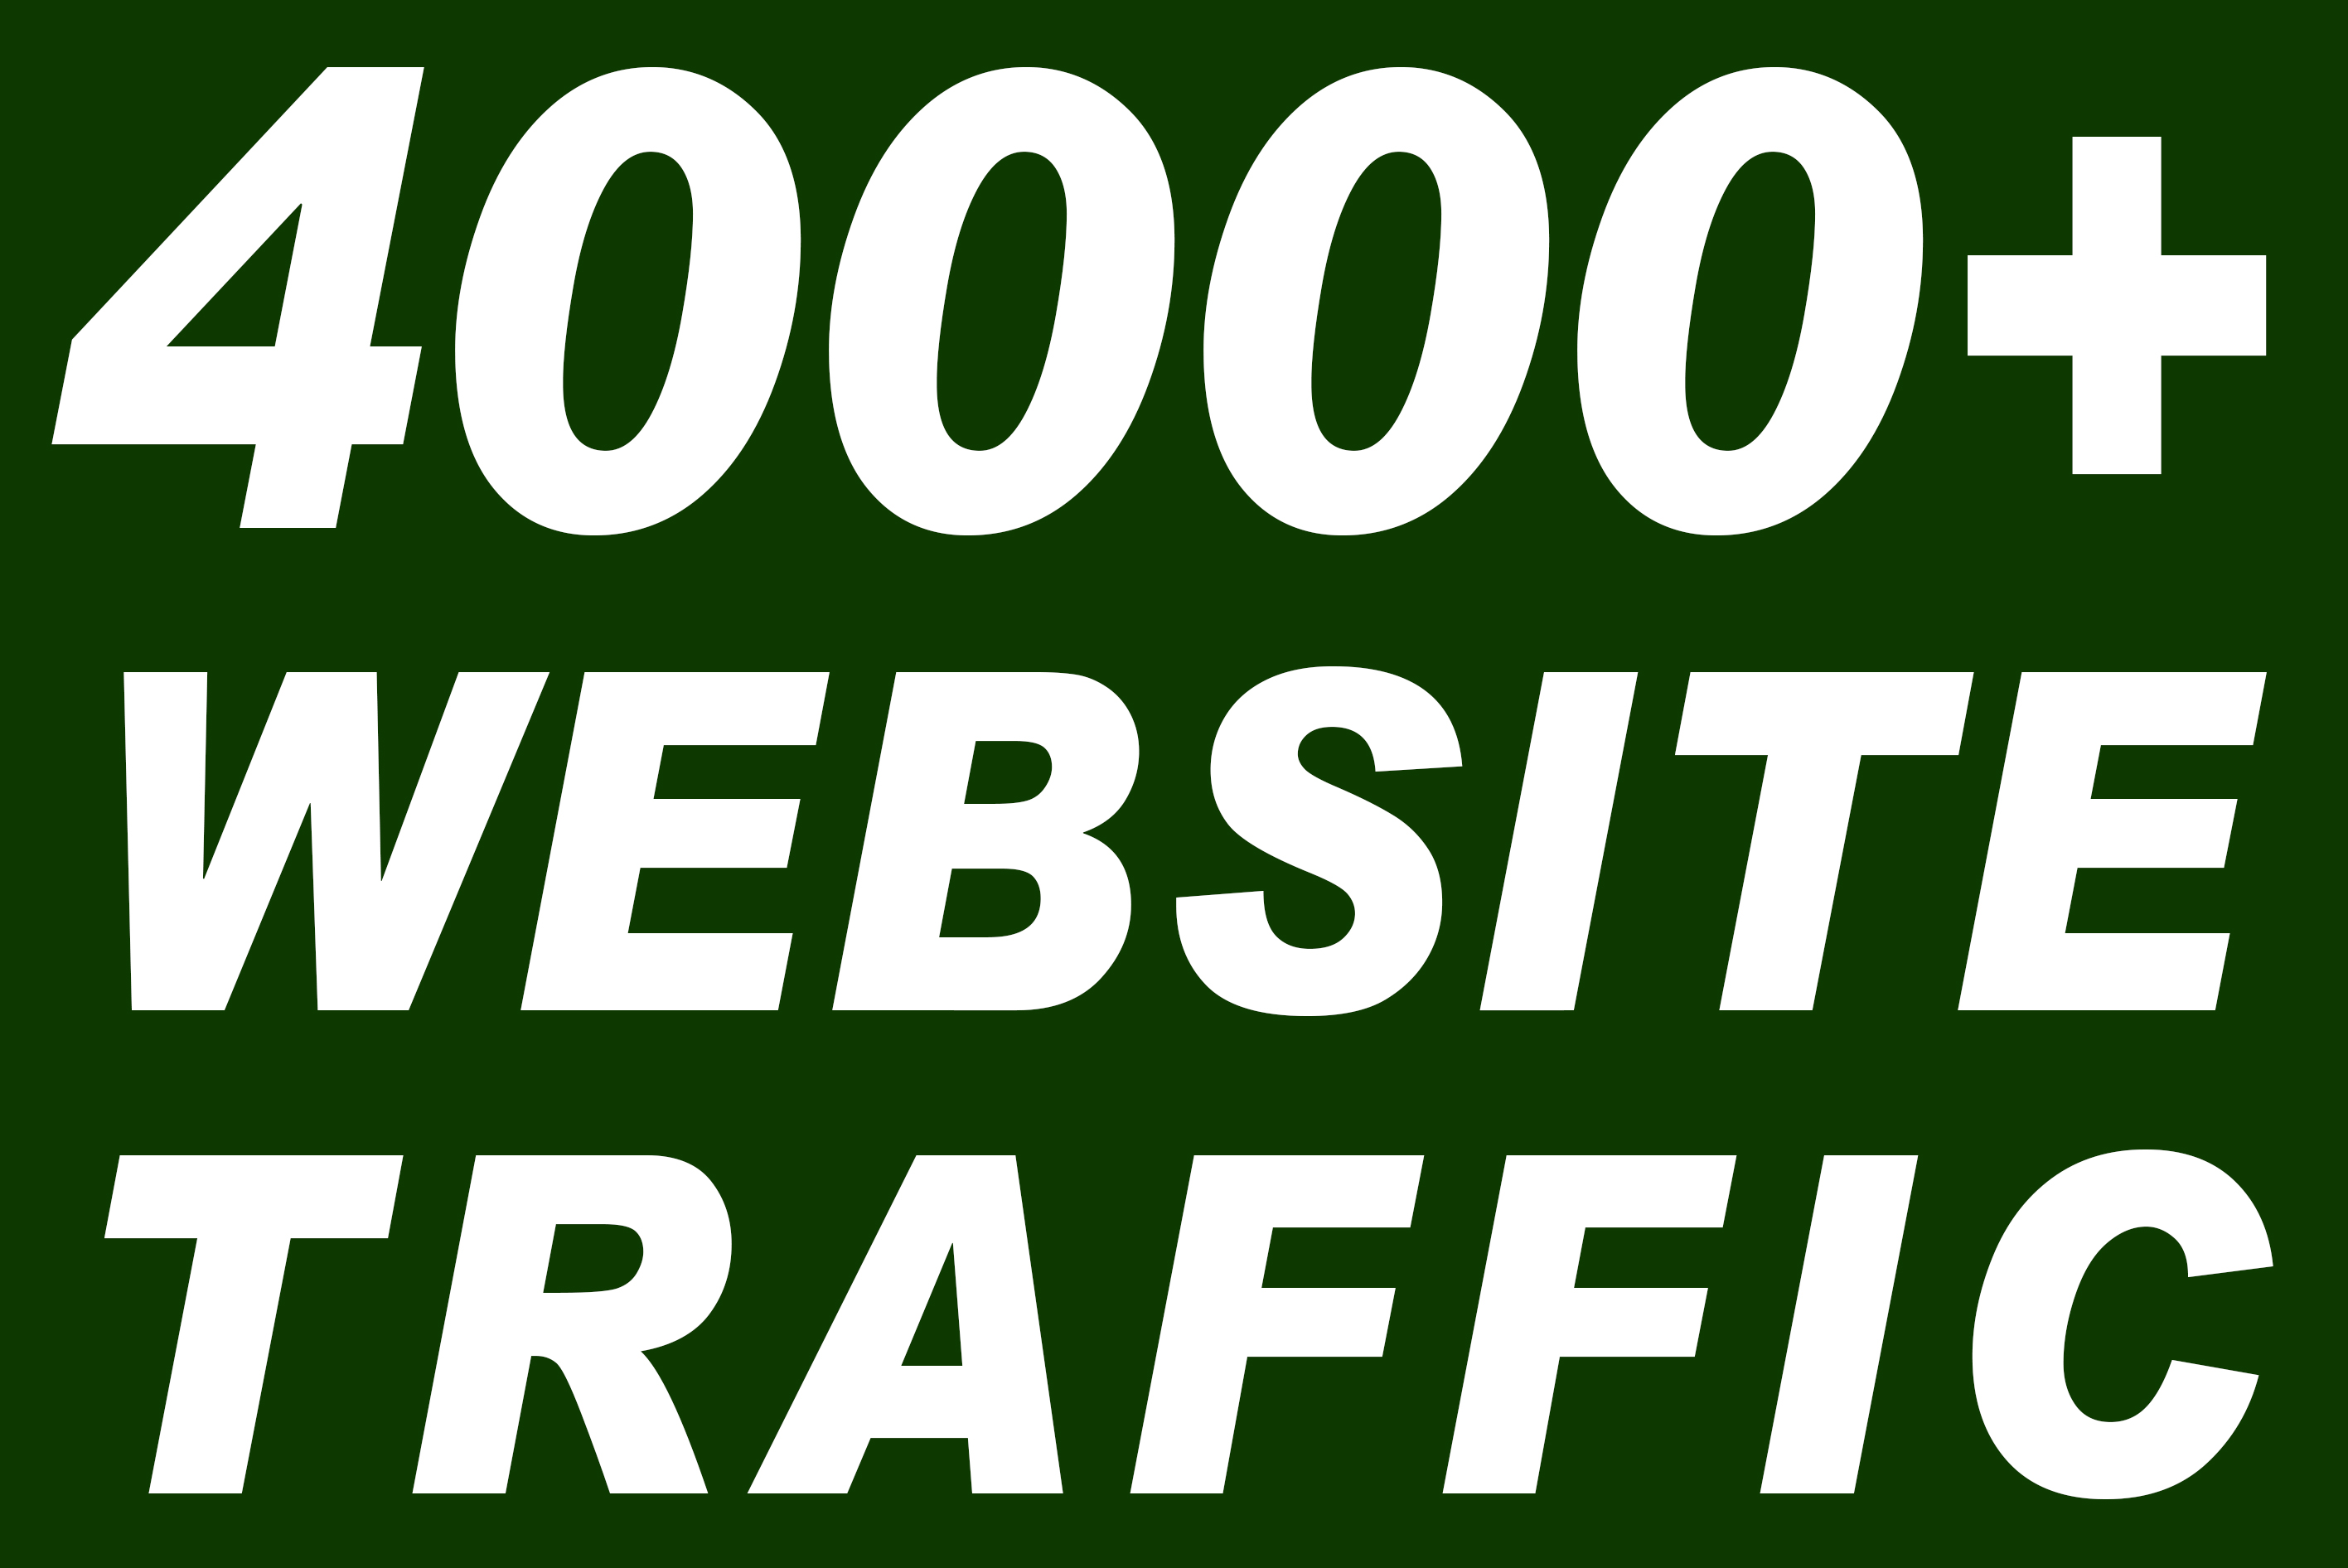 I will send 40000+ real active human visitors from google, yahoo, bing etc